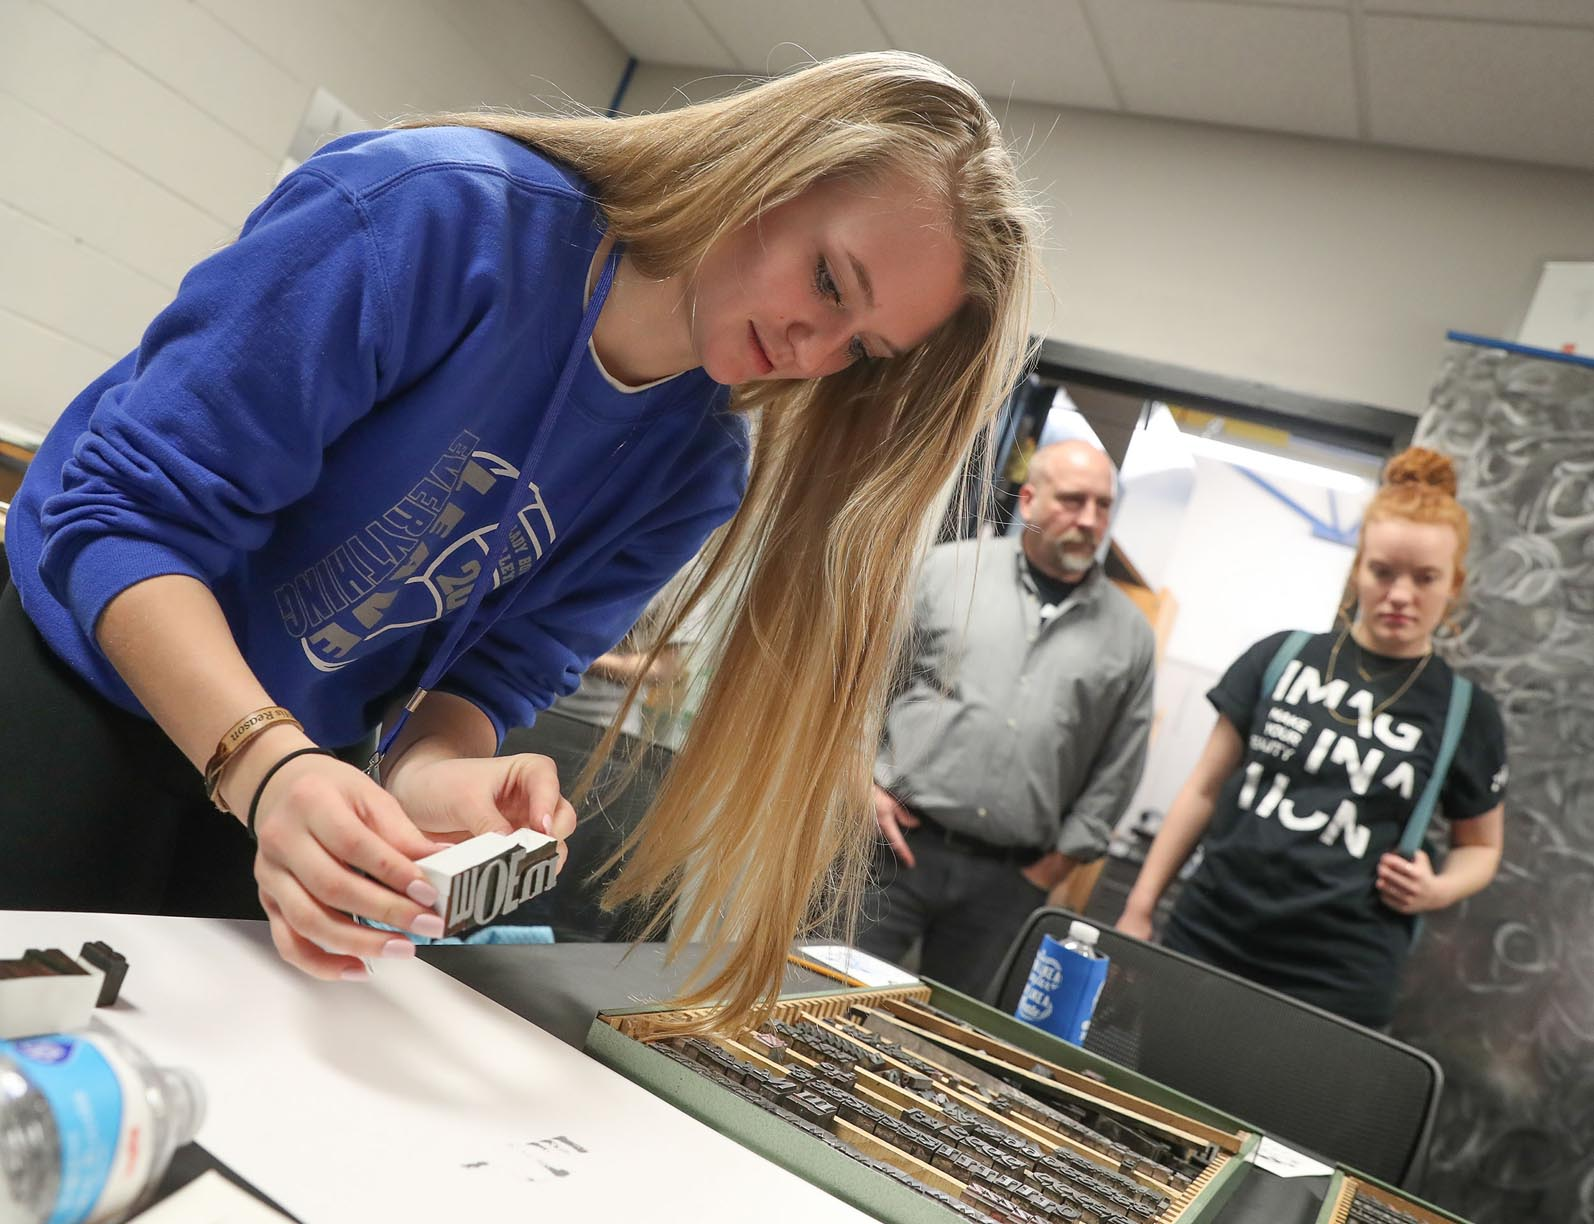 Faith Bierman, a student at Arnold Public Schools, participates in the letterpress printing workshop during Wednesday's Imagination Day event at UNK. Hosted by UNK's Department of Art and Design, Imagination Day gives high schoolers a chance to learn more about UNK programs and career options while exploring various art techniques in a hands-on environment.